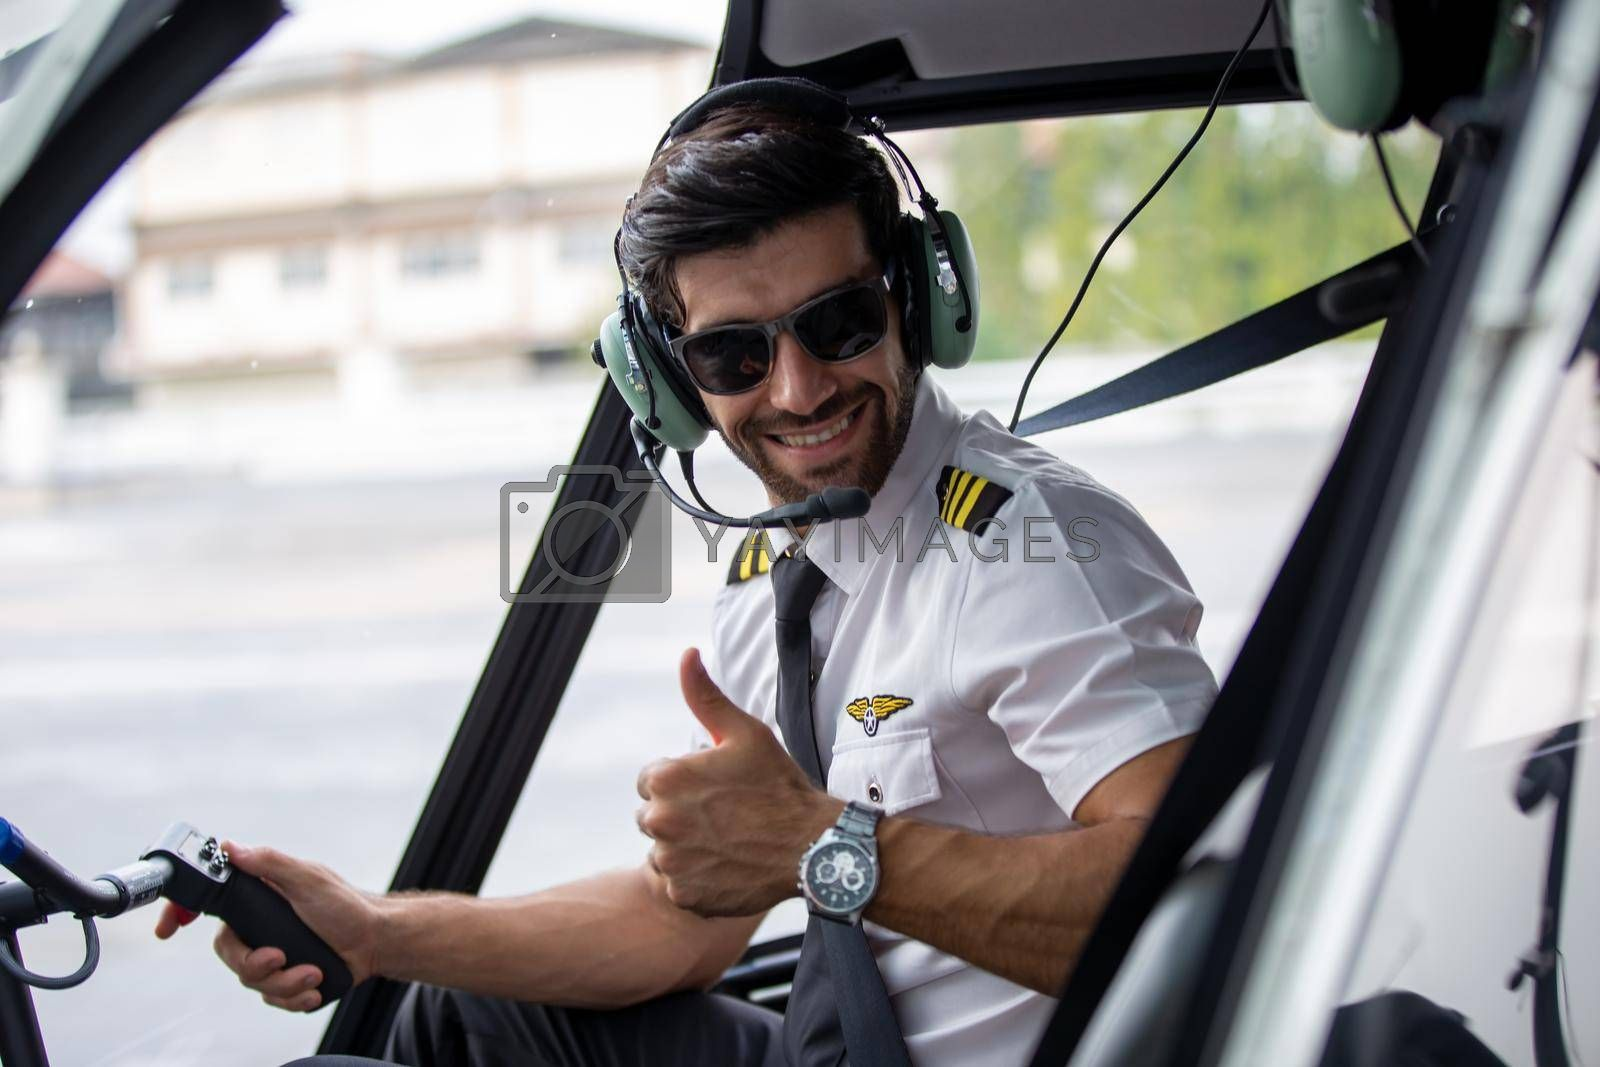 Shot of a mature Helicopter pilot using a headset while traveling in a helicopter, Business people traveling by helicopter